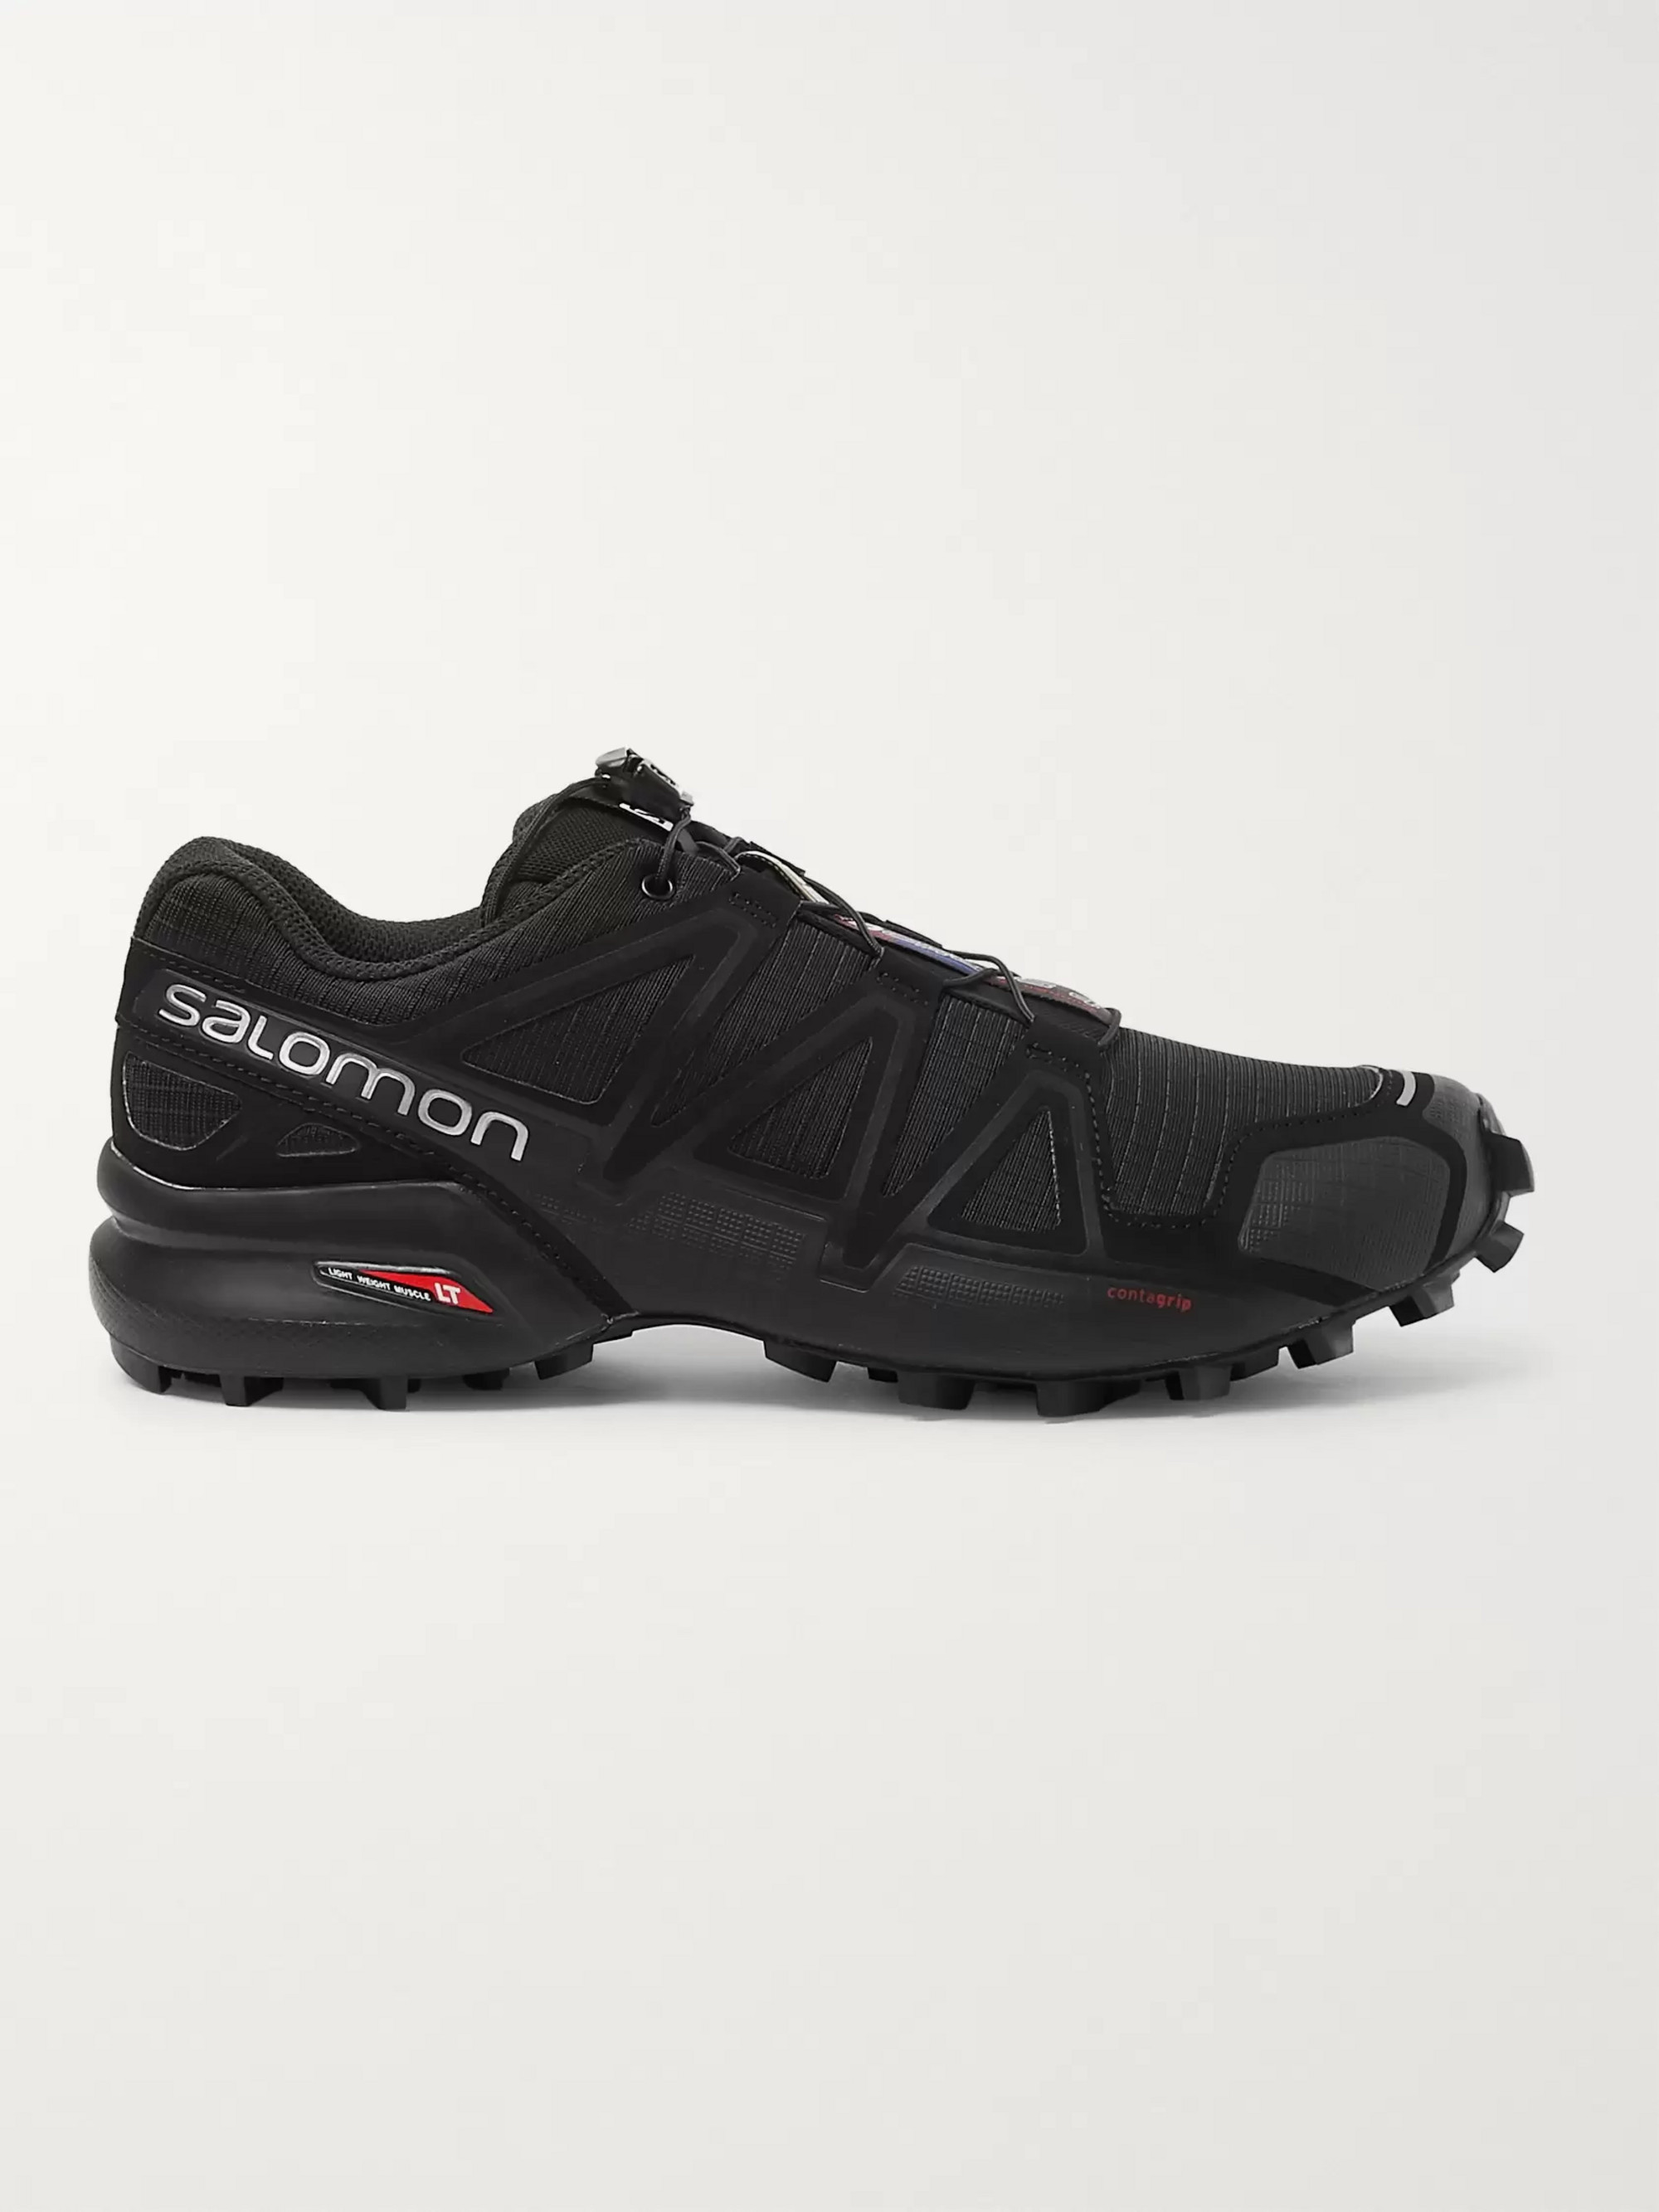 Salomon Speedcross 4 Ripstop and Rubber Trail Running Sneakers